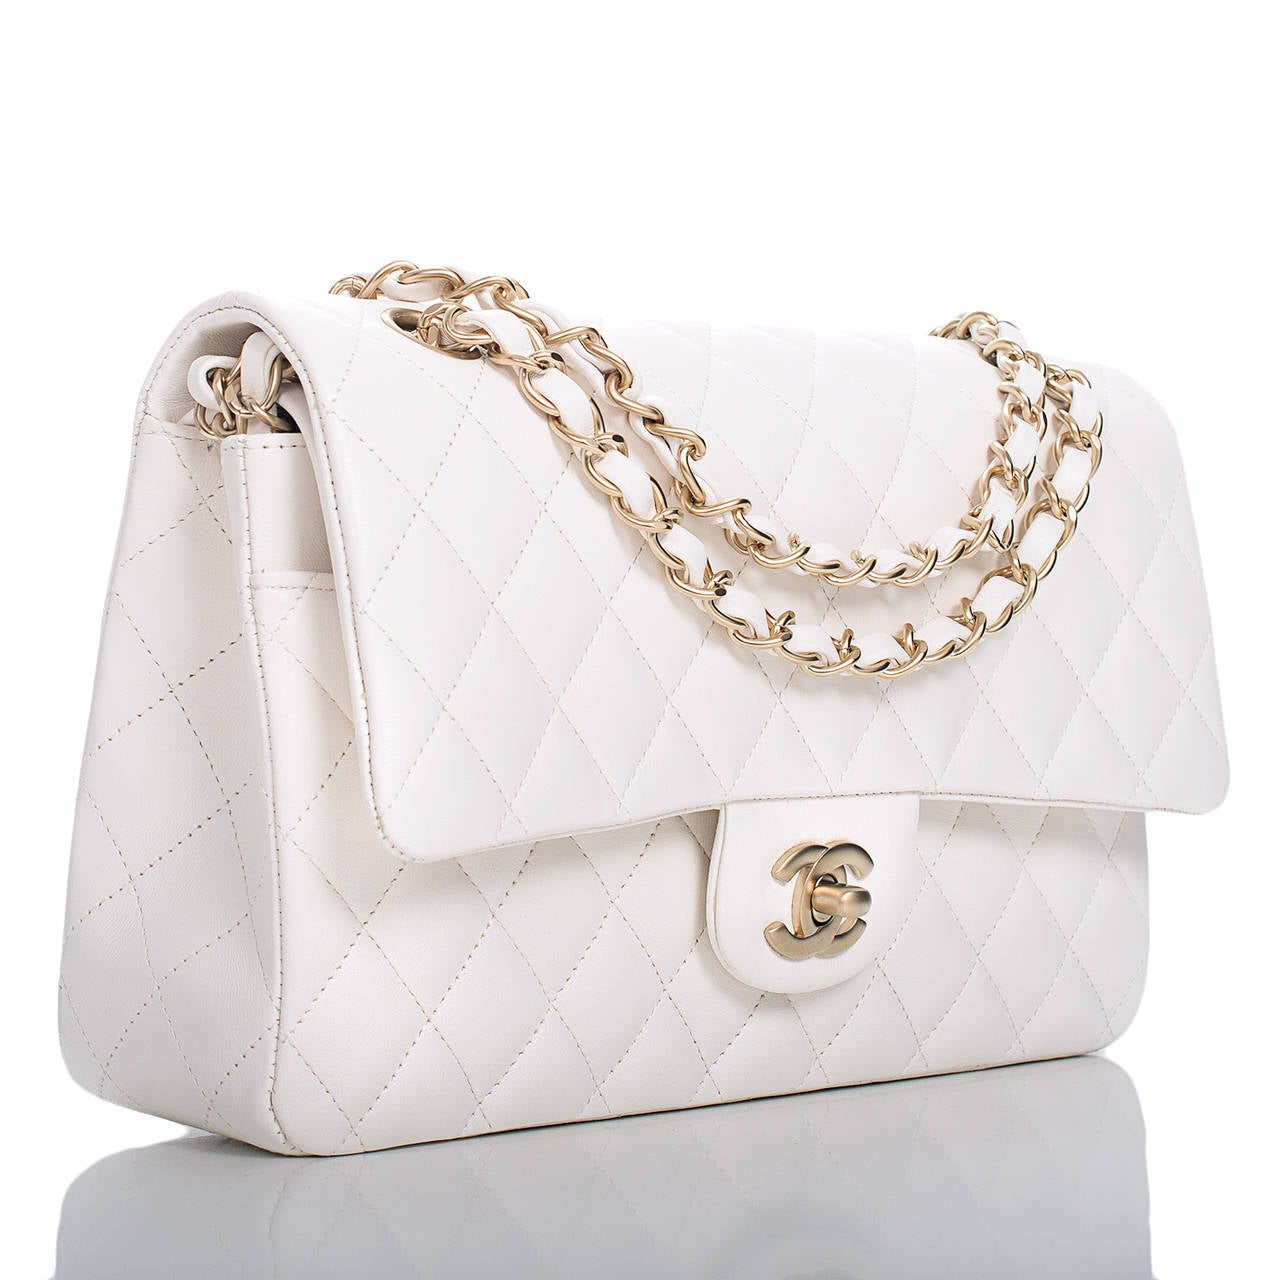 This Large Classic double flap bag of beautiful white quilted lambskin leather and matte gold tone hardware features a front flap with signature CC turnlock closure, half moon back pocket and an adjustable interwoven matte gold tone chain link and